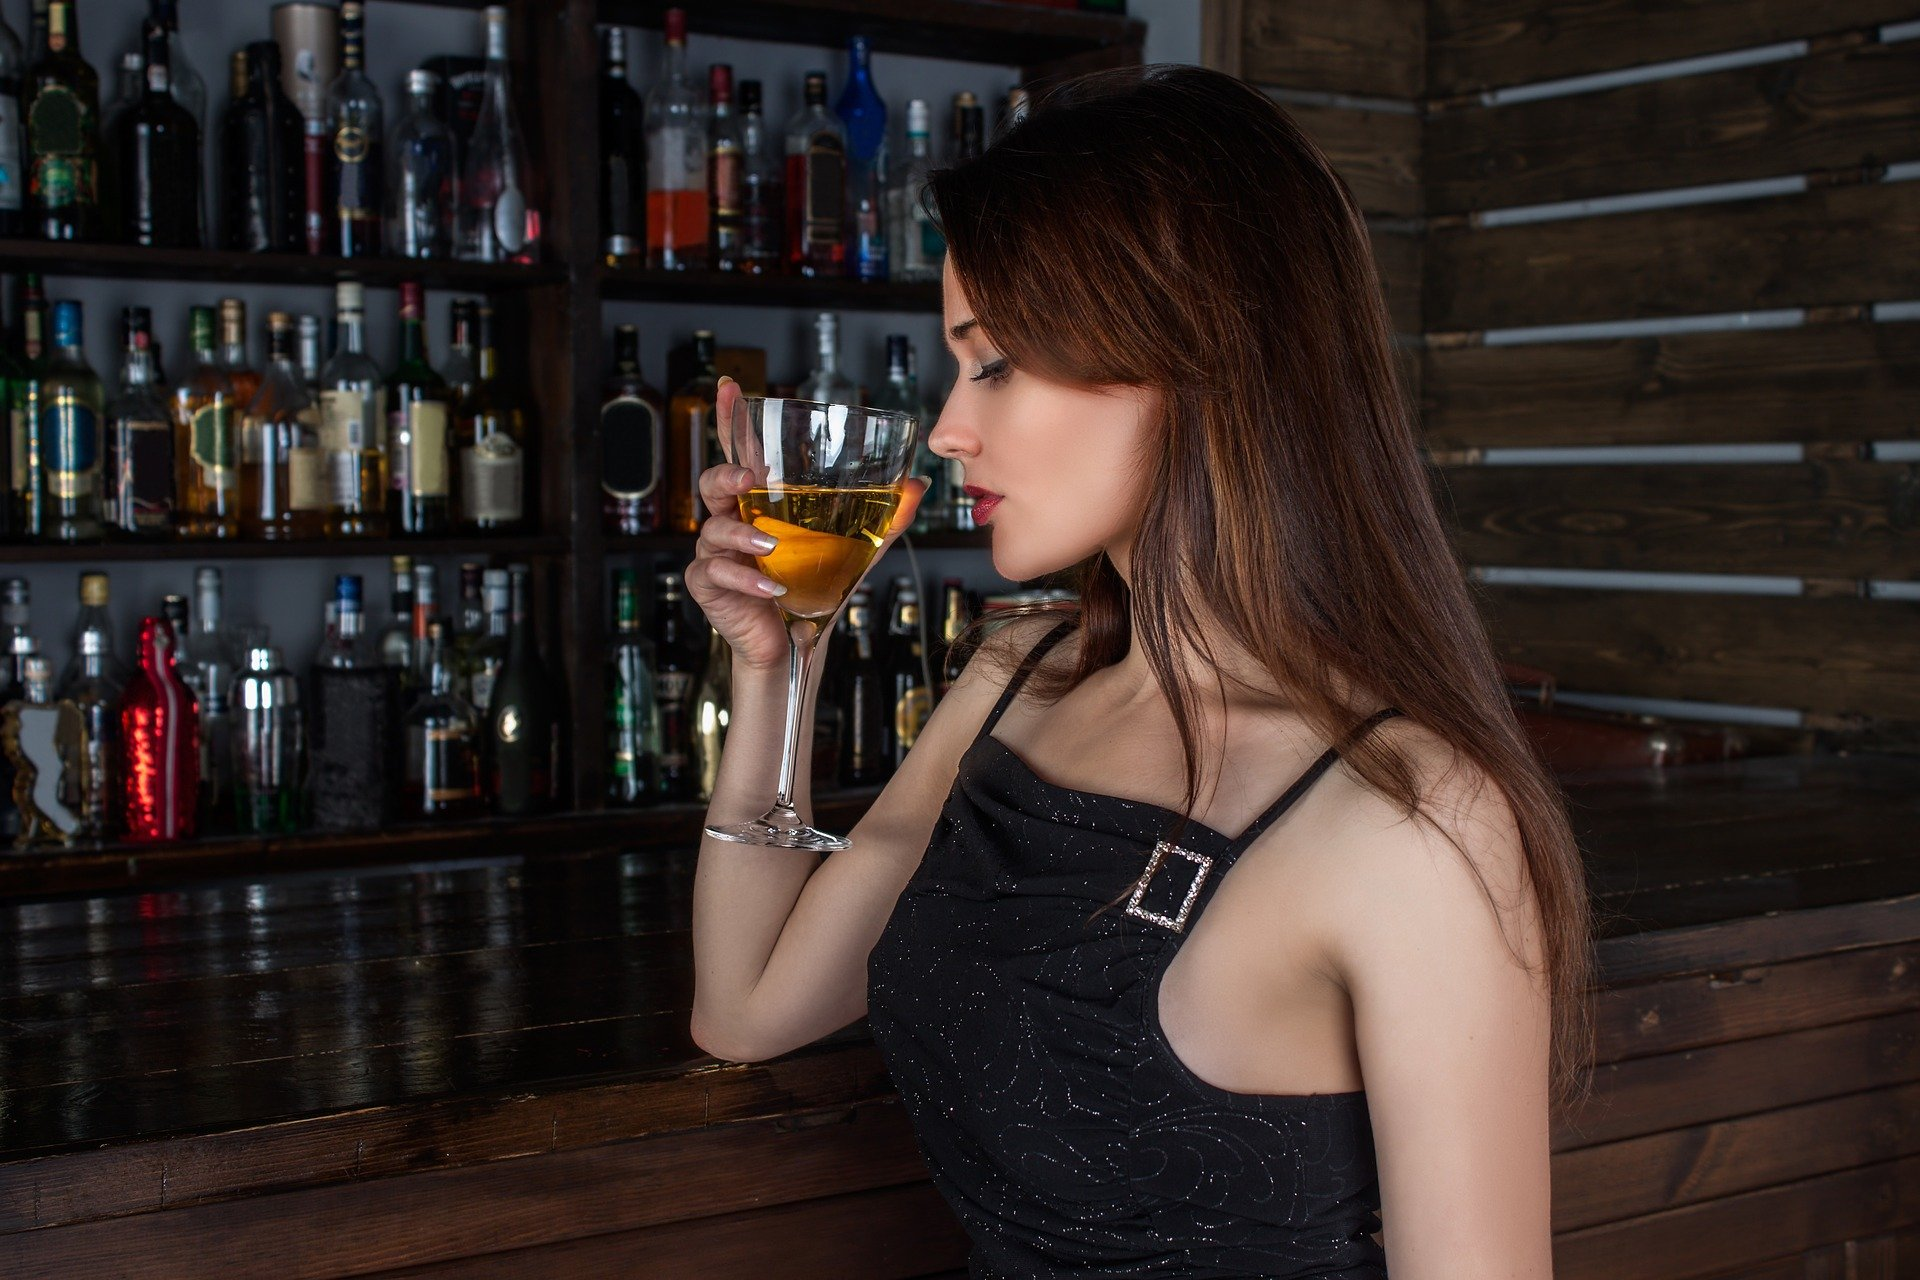 A beautiful young woman sitting alone at the bar drinking. | Photo: Pixabay